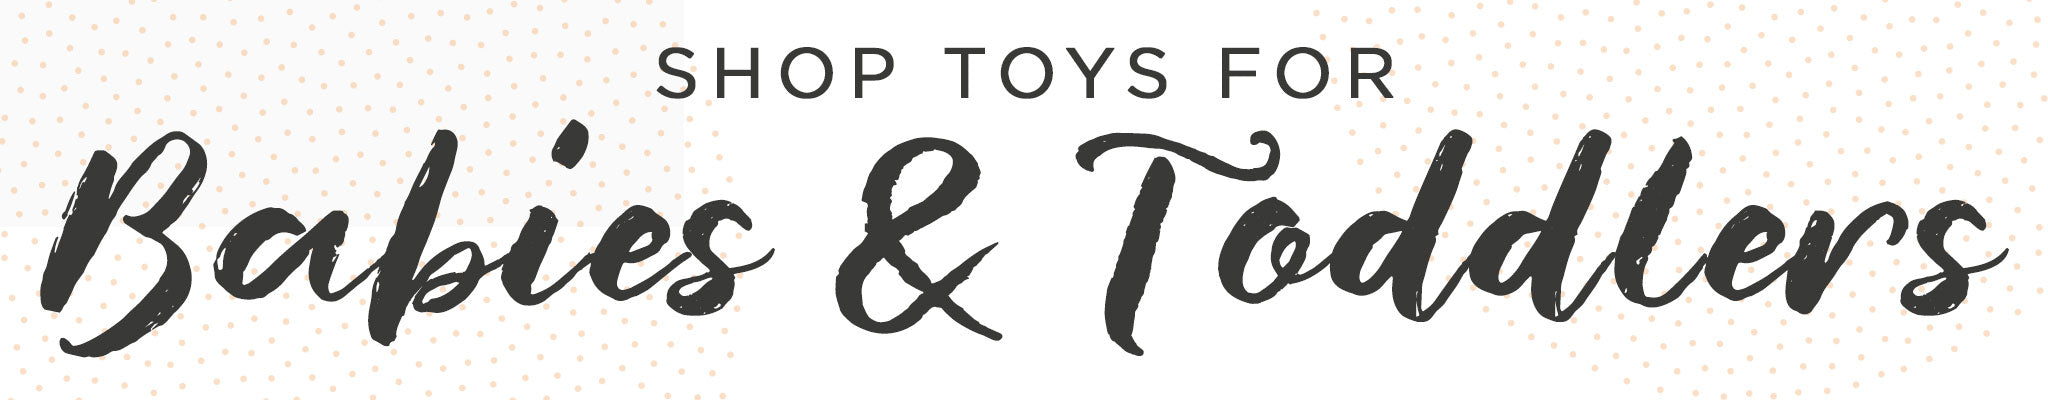 Shop Toys for Babies & Toddlers